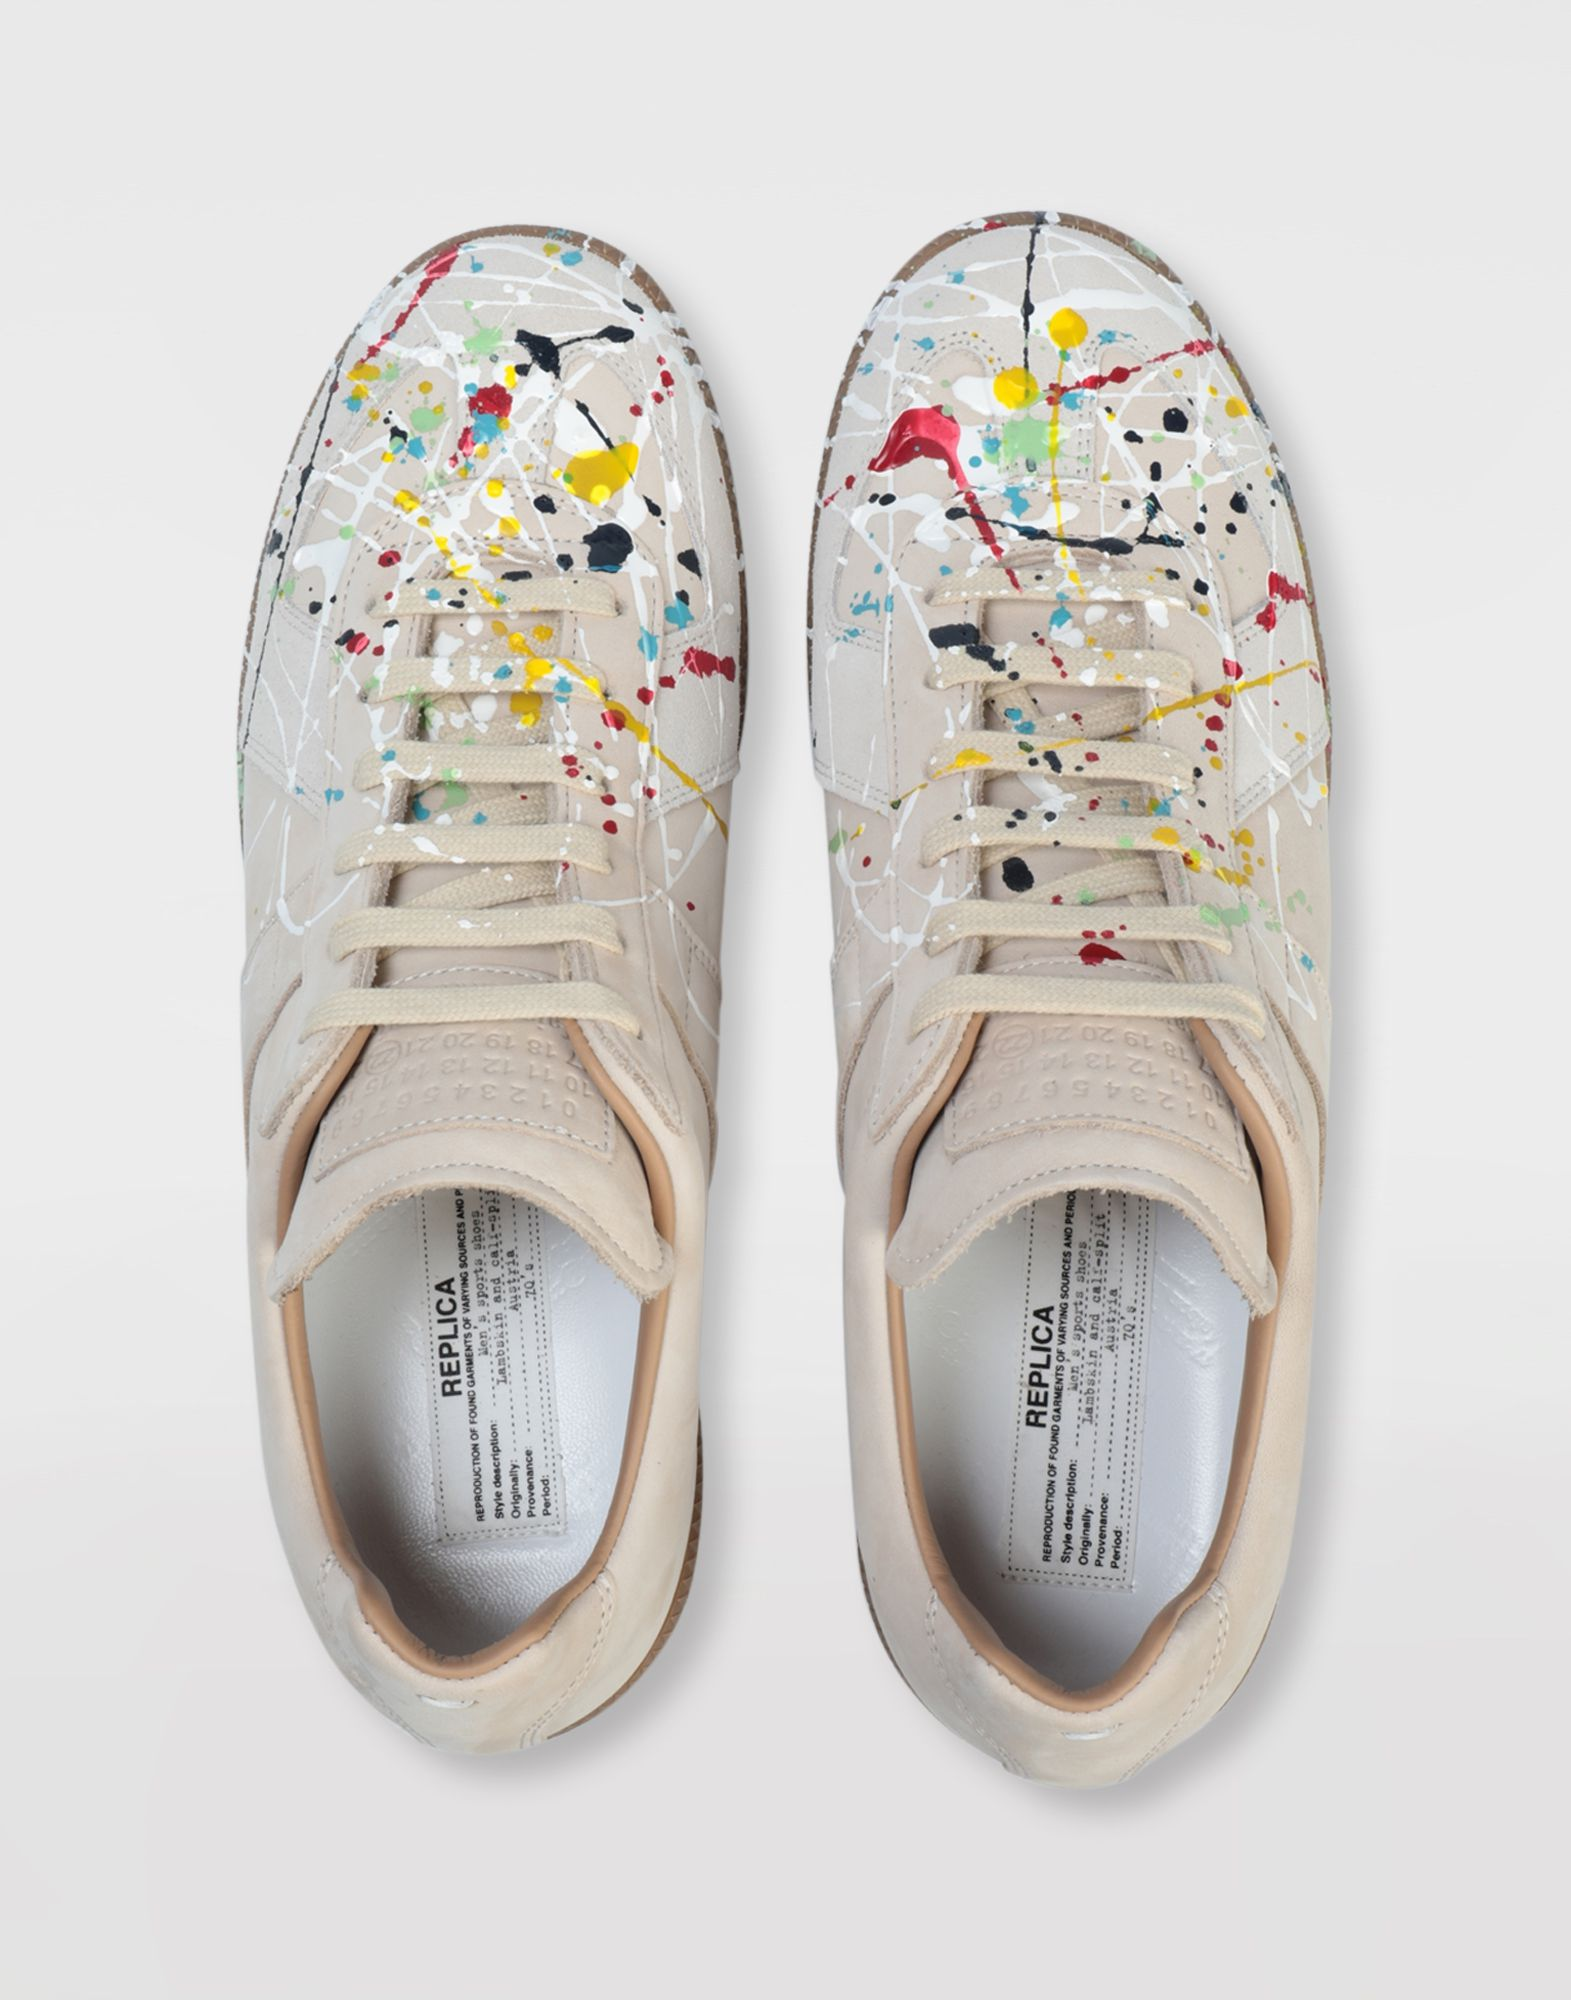 MAISON MARGIELA Suede paint drop 'Replica' sneakers Sneakers Man e